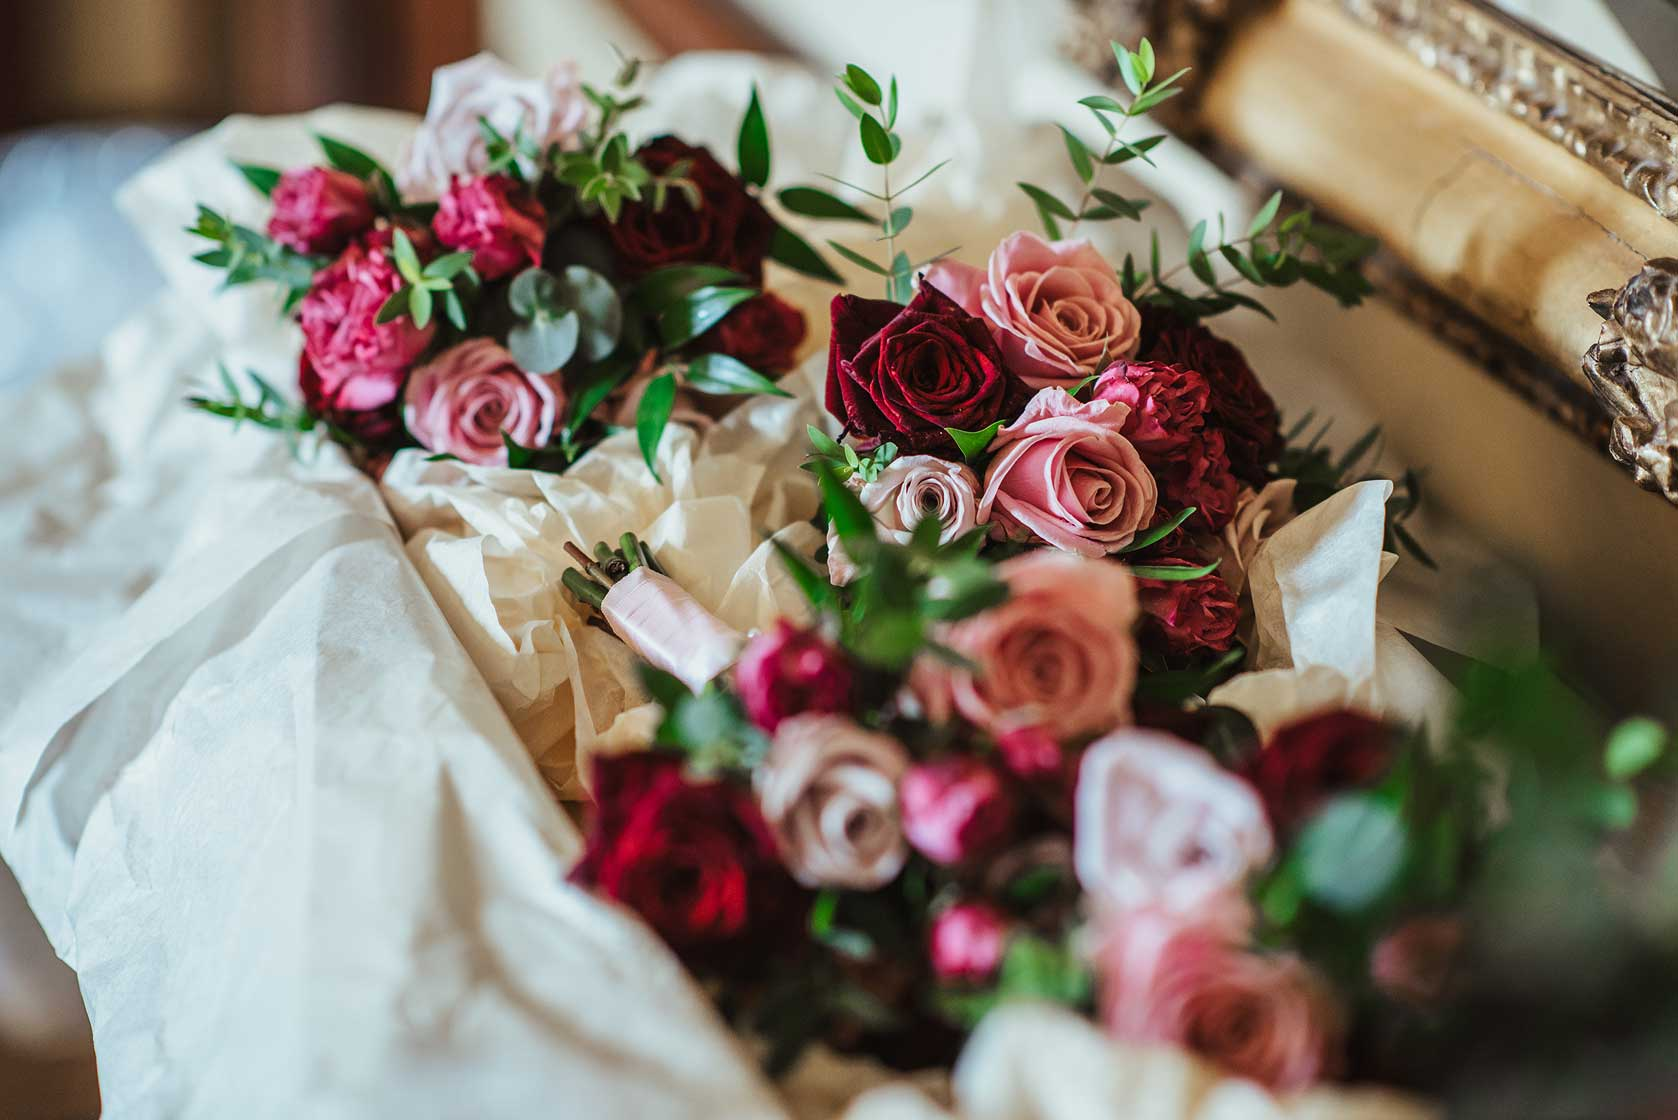 Pink and red roses in wedding bouquets at Stoke Park